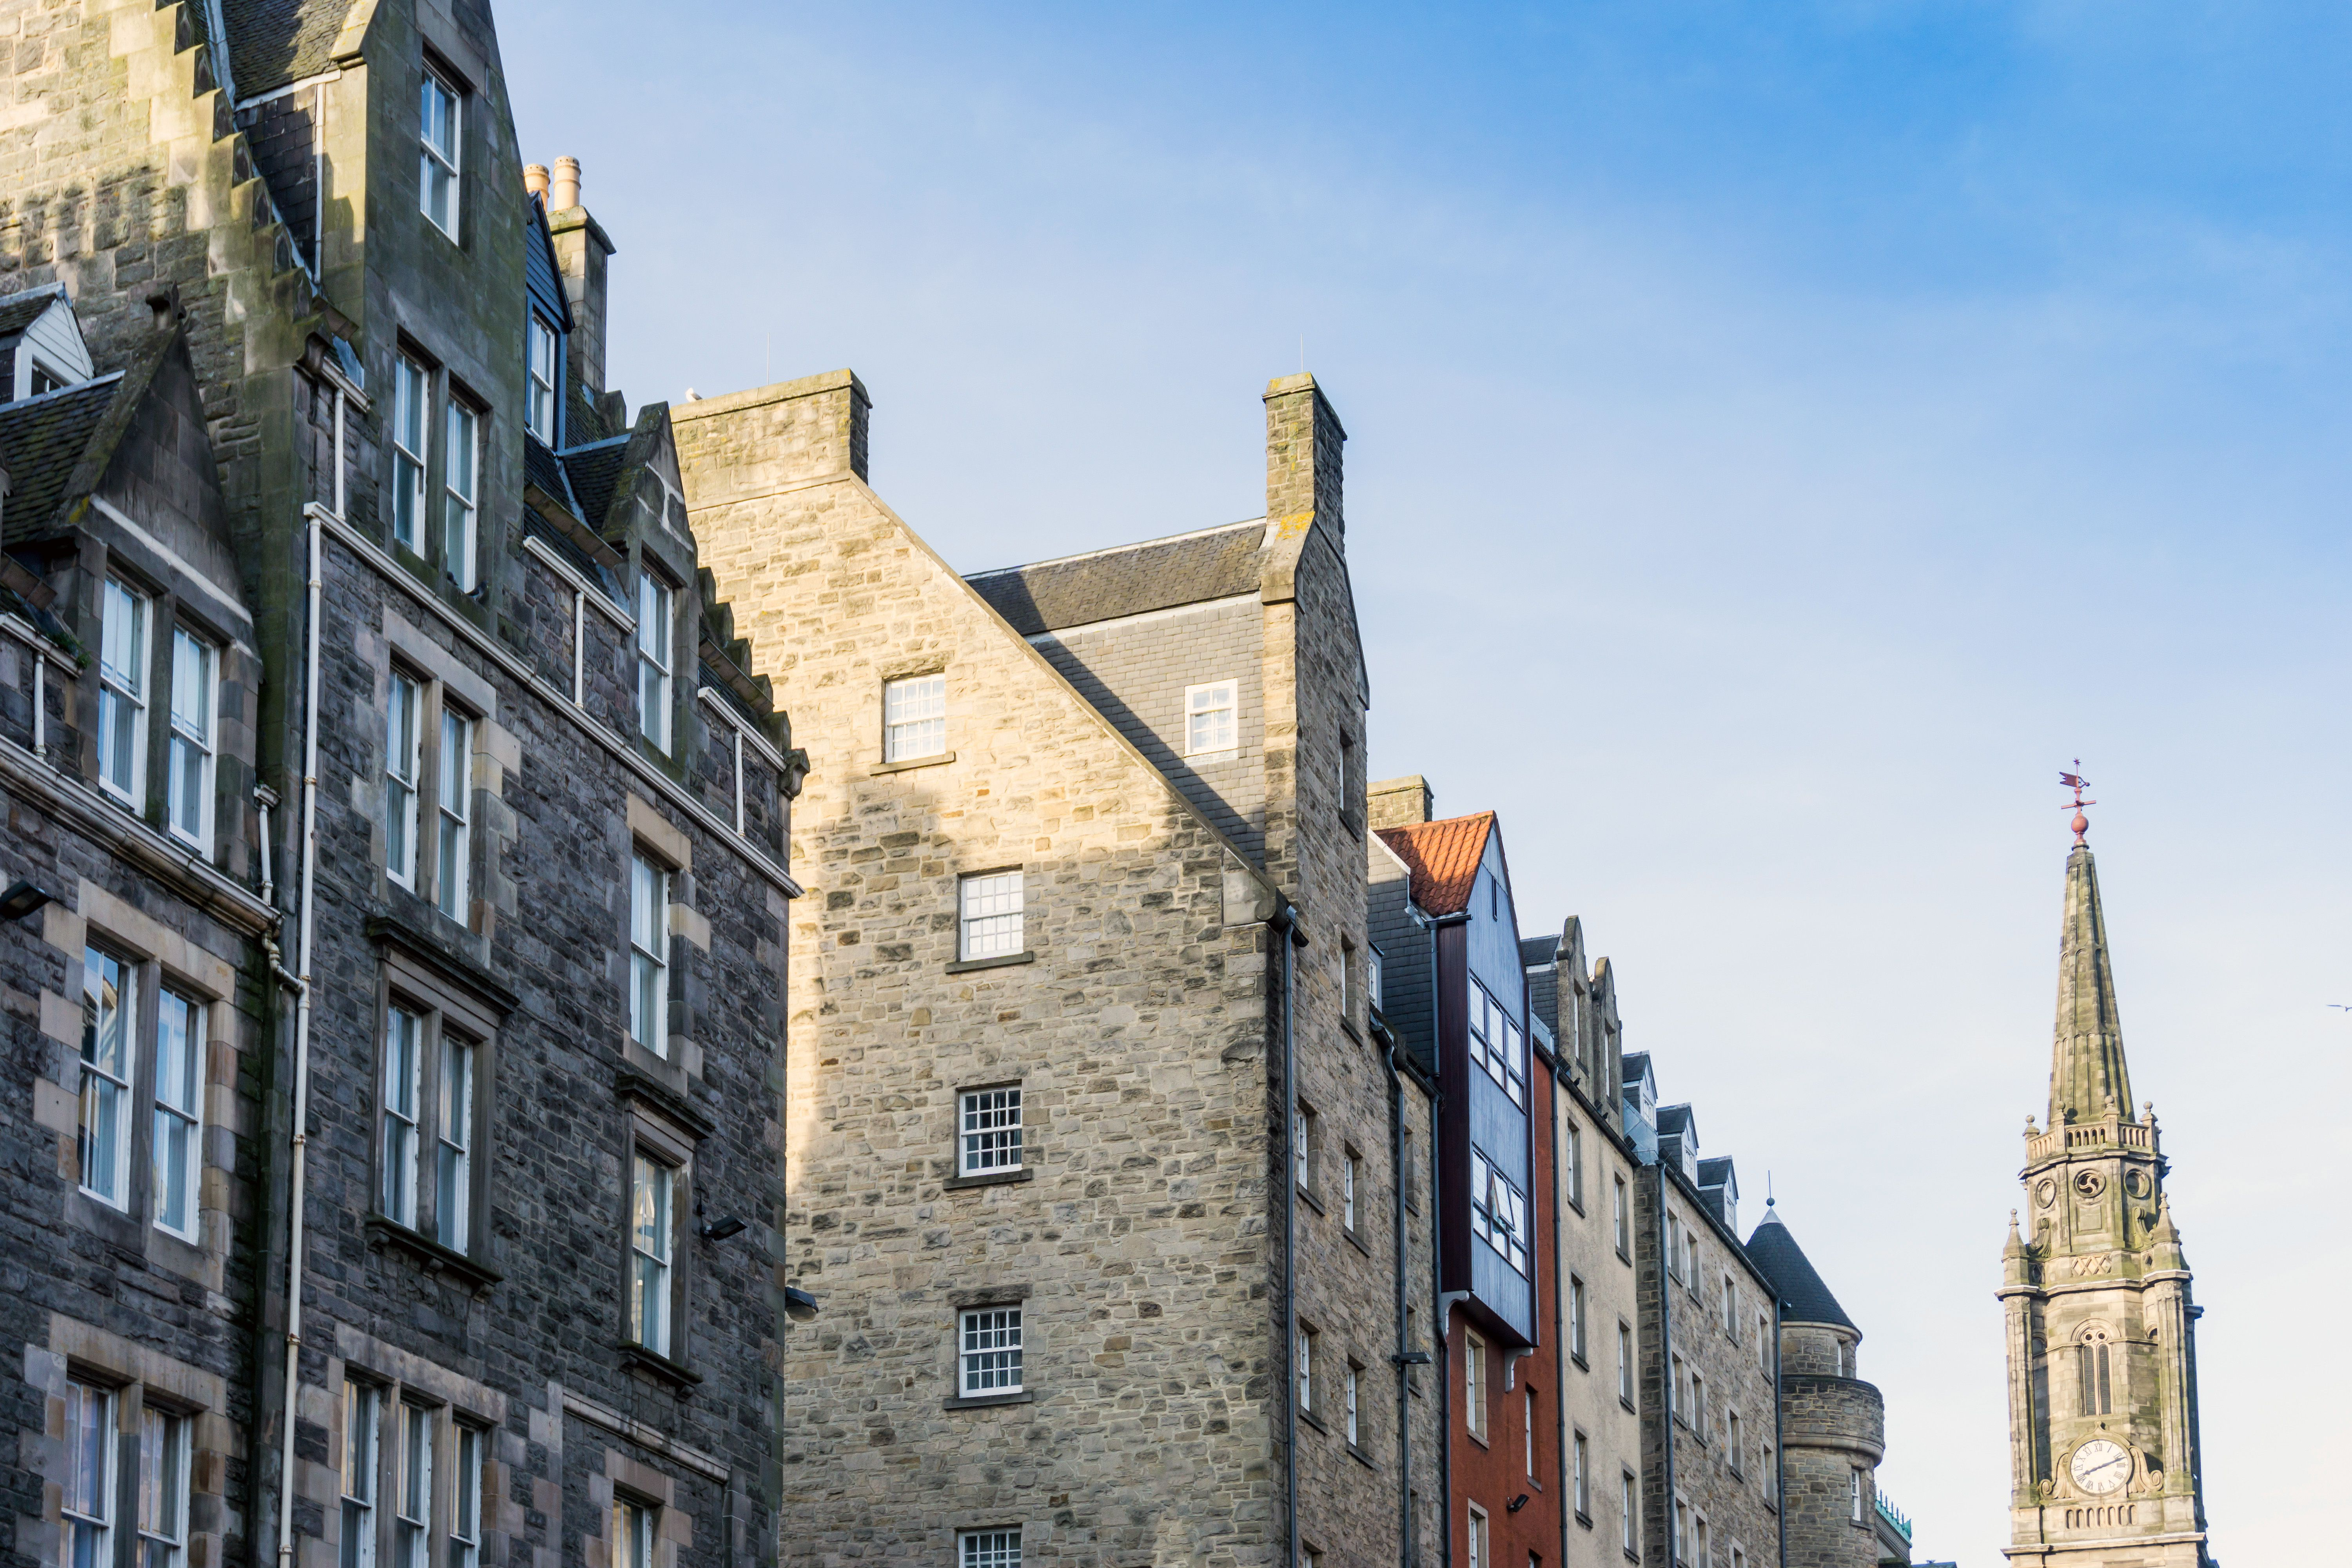 Low Angle View Of Buildings At Royal Mile